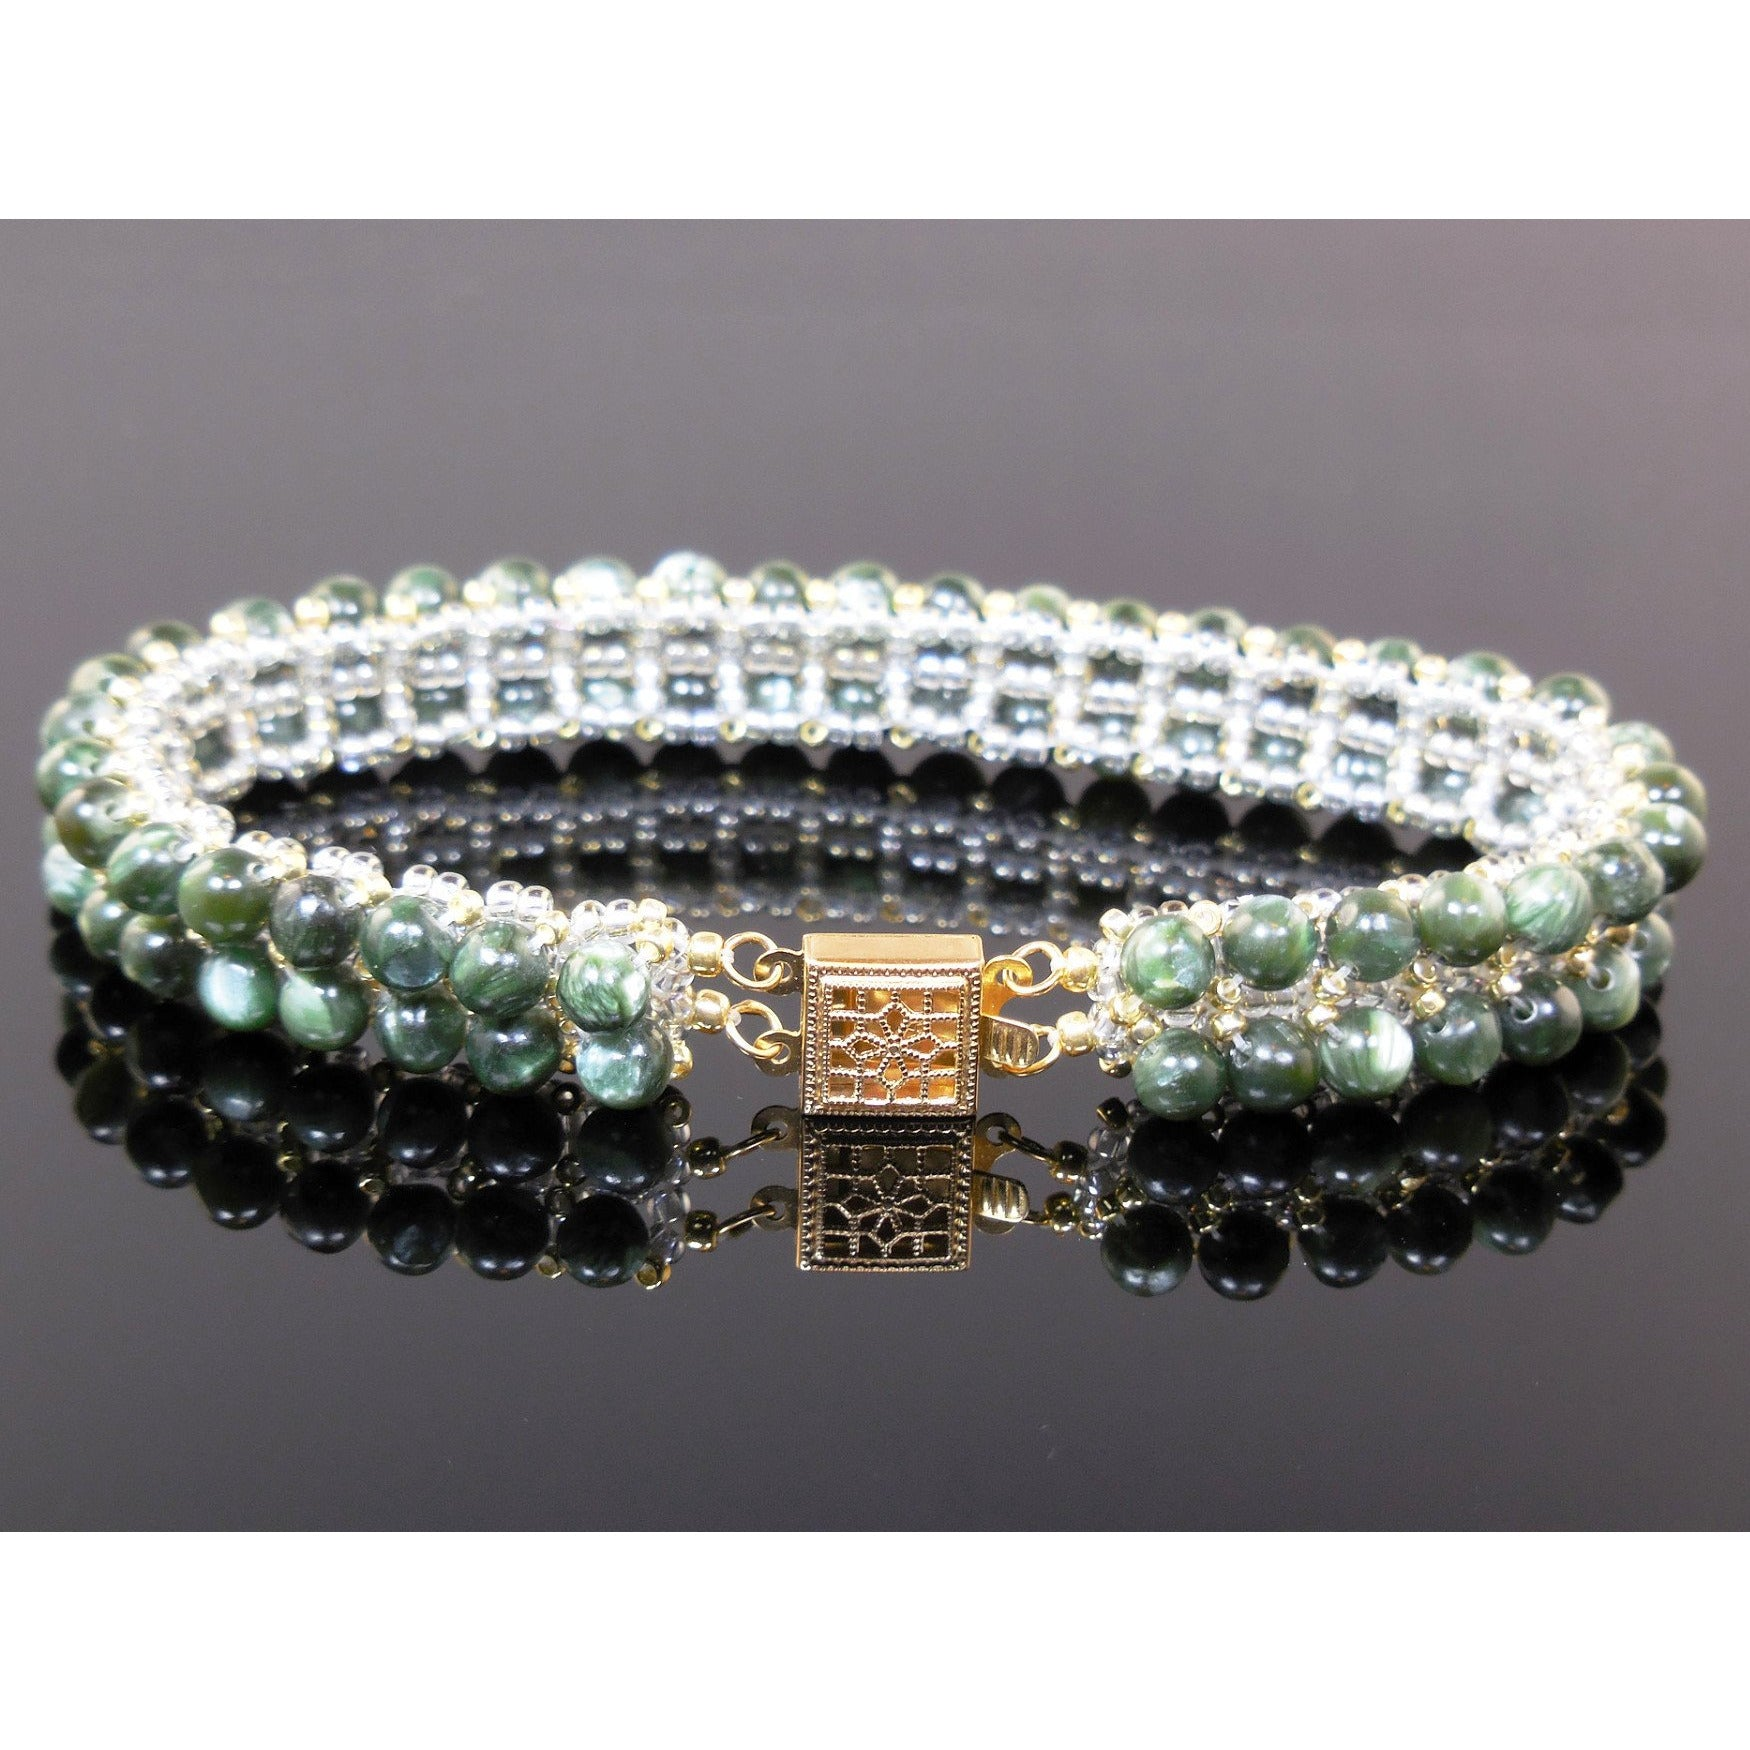 Handwoven Seraphinite Bracelet w/14kt Gold-Filled Box Clasp